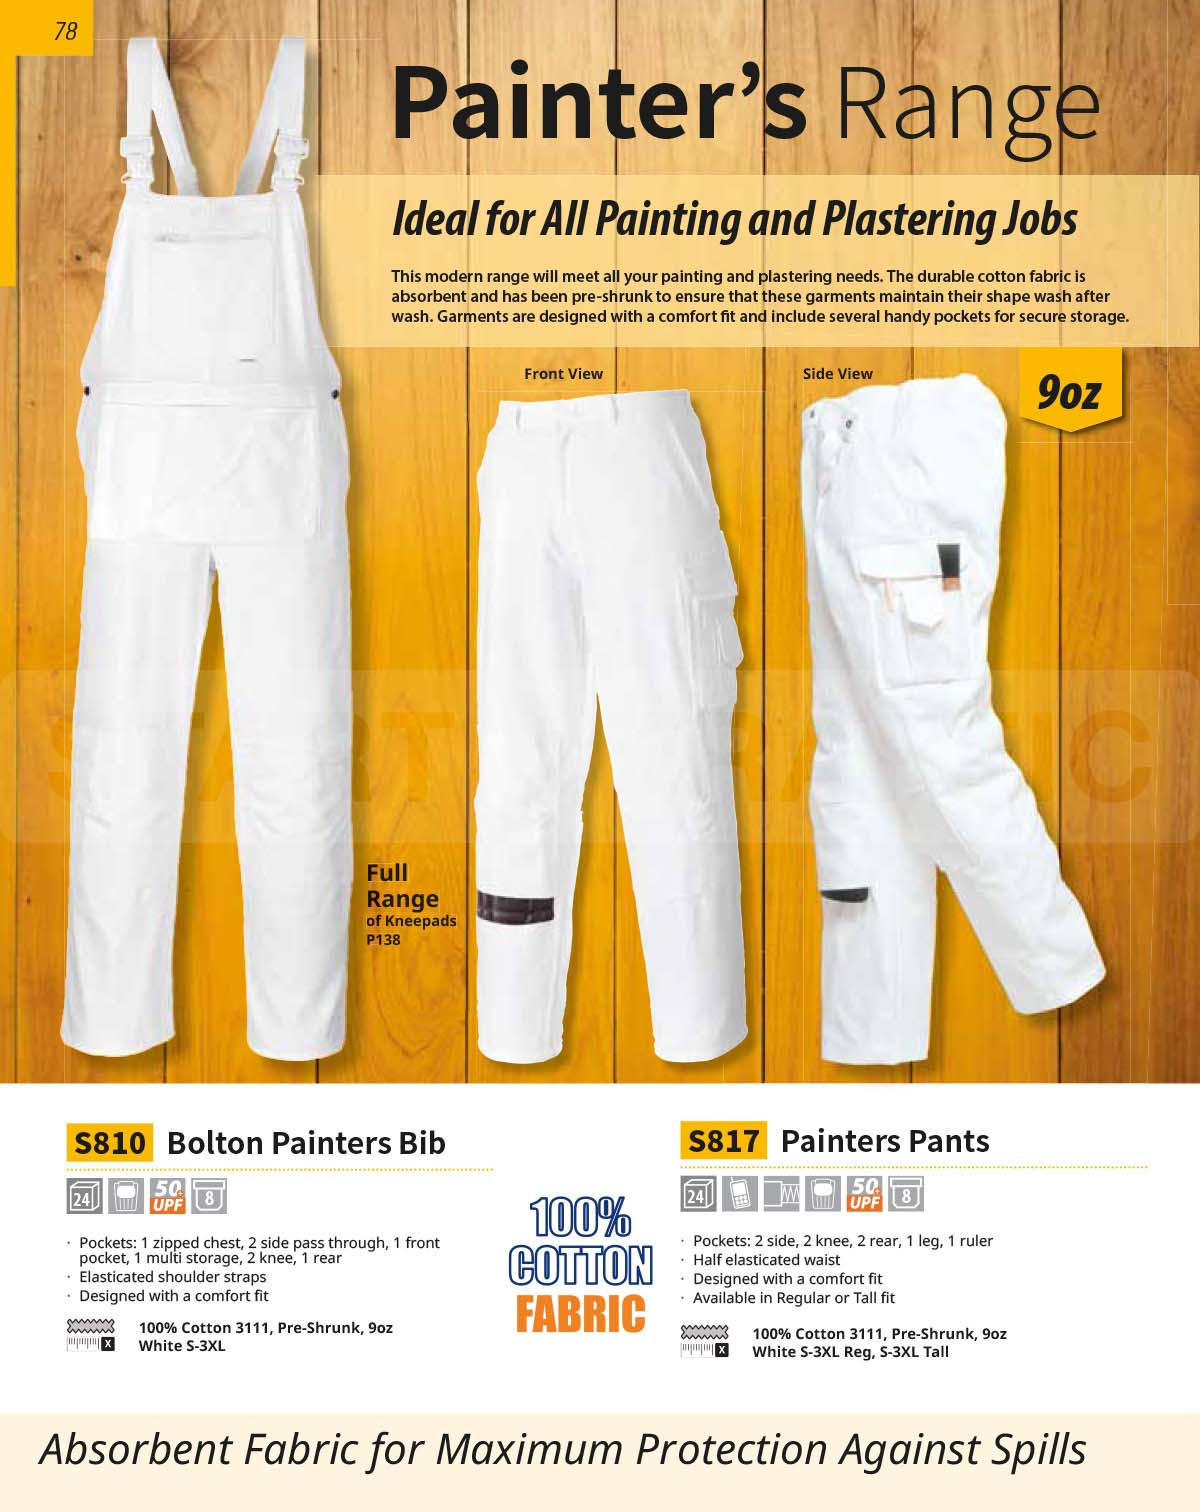 View The Bolton Painters Bib In the Catalogue